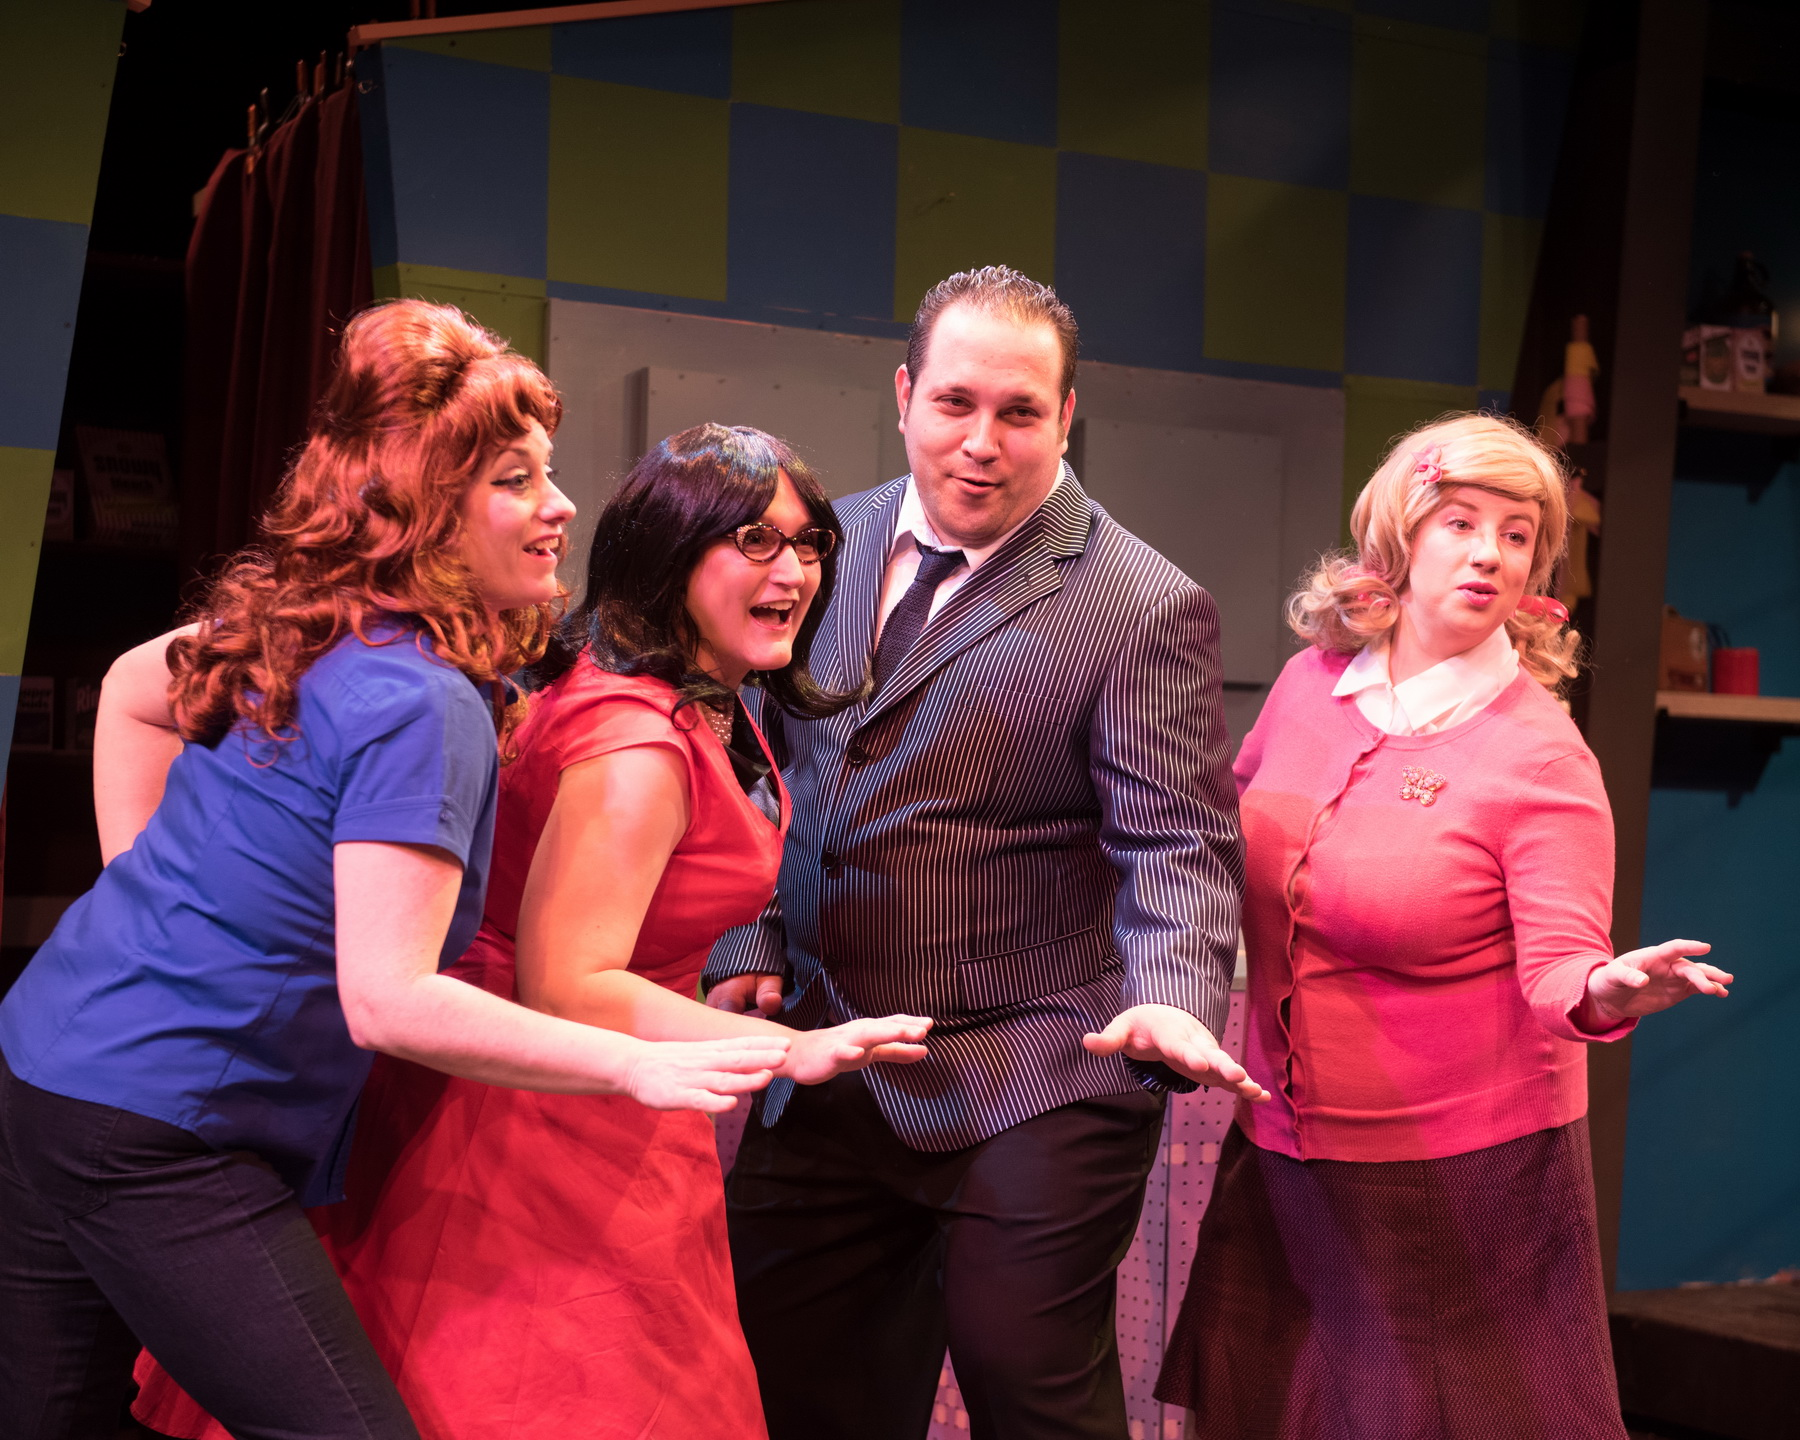 Eileen Canepari as Marge, Kate Klotzbach as Dee Dee, Matt Cuffari as Johnny Angel and Ellie St. Cyr as Cindy